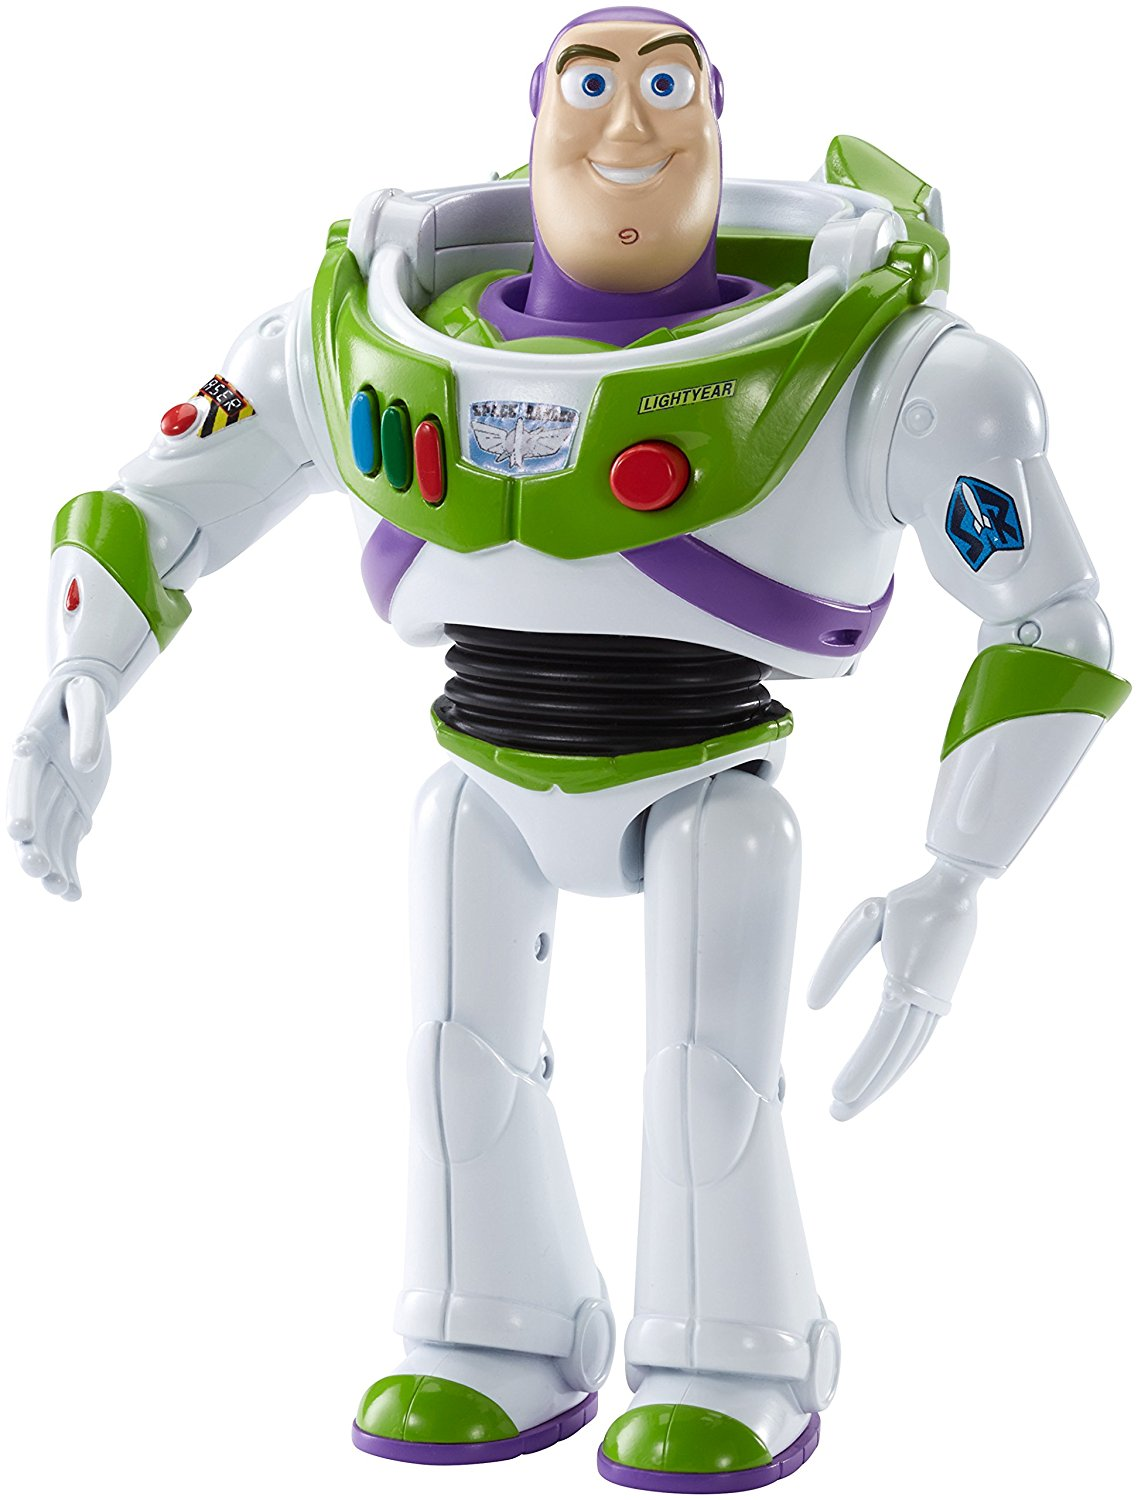 Disney Pixar Toy Story Talking Buzz Figure, Rex Thinkway Exclusive String 2Pack Sounds... by